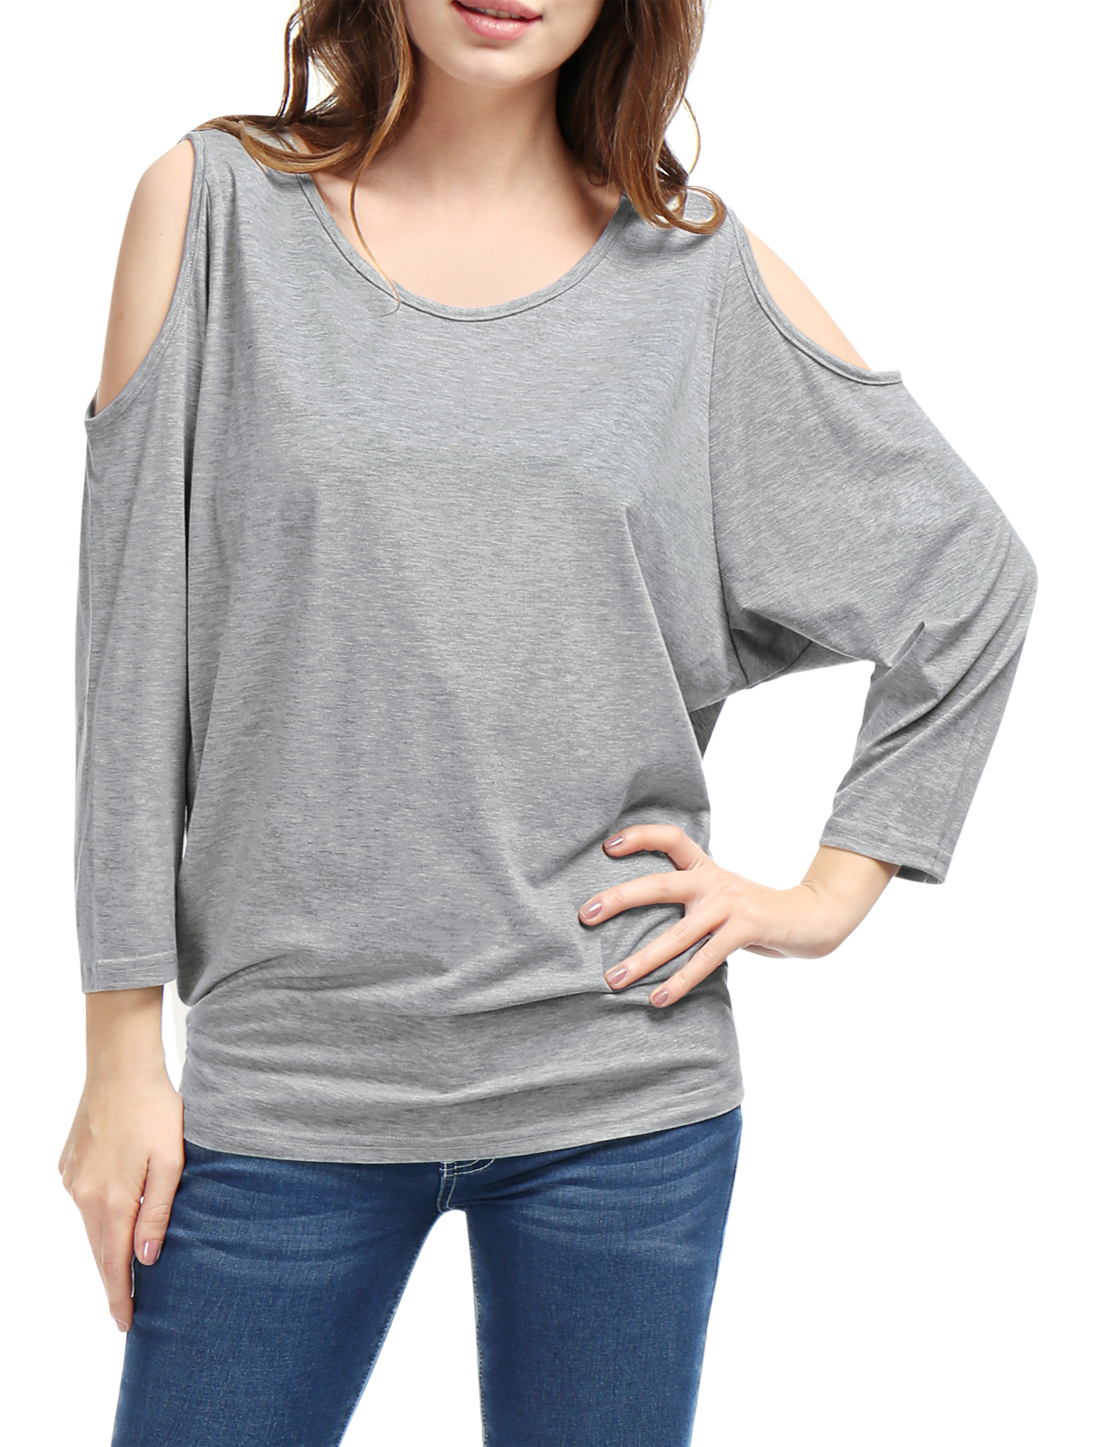 Gray Cut out Shoulder Bat Wing Blouse Shirt S for Women